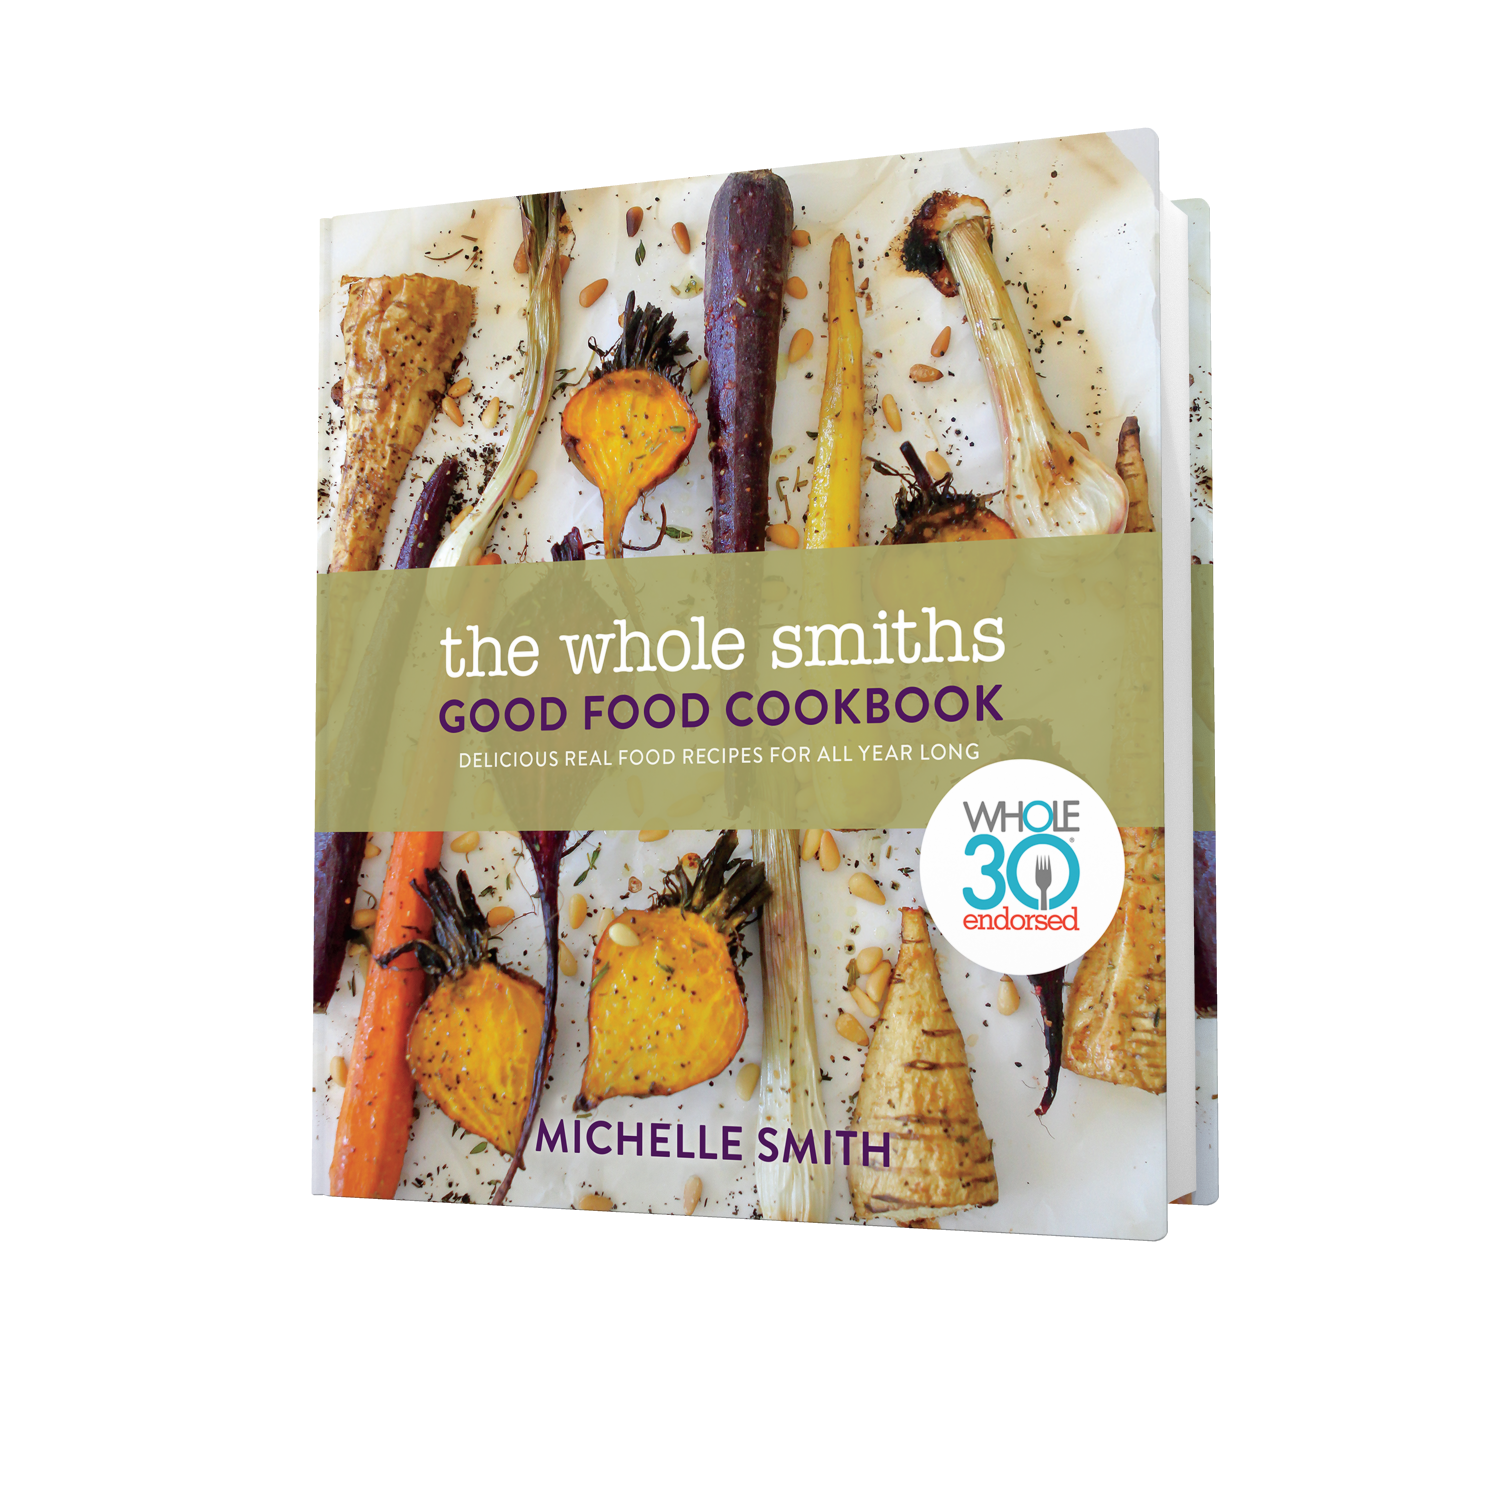 The whole smiths good food cookbook i am excited to be publishing my first book the whole smiths good food cookbook on june 5 for those who order the book before june 5 and fill out the forumfinder Image collections